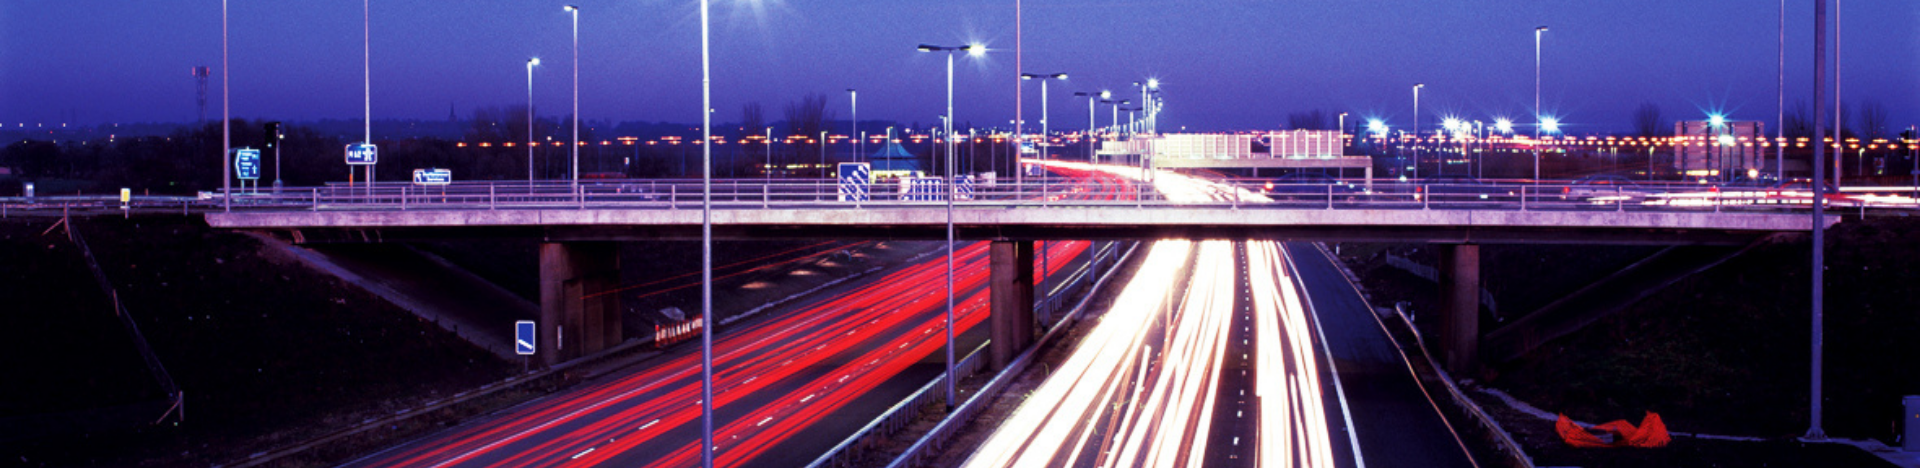 M62 at night